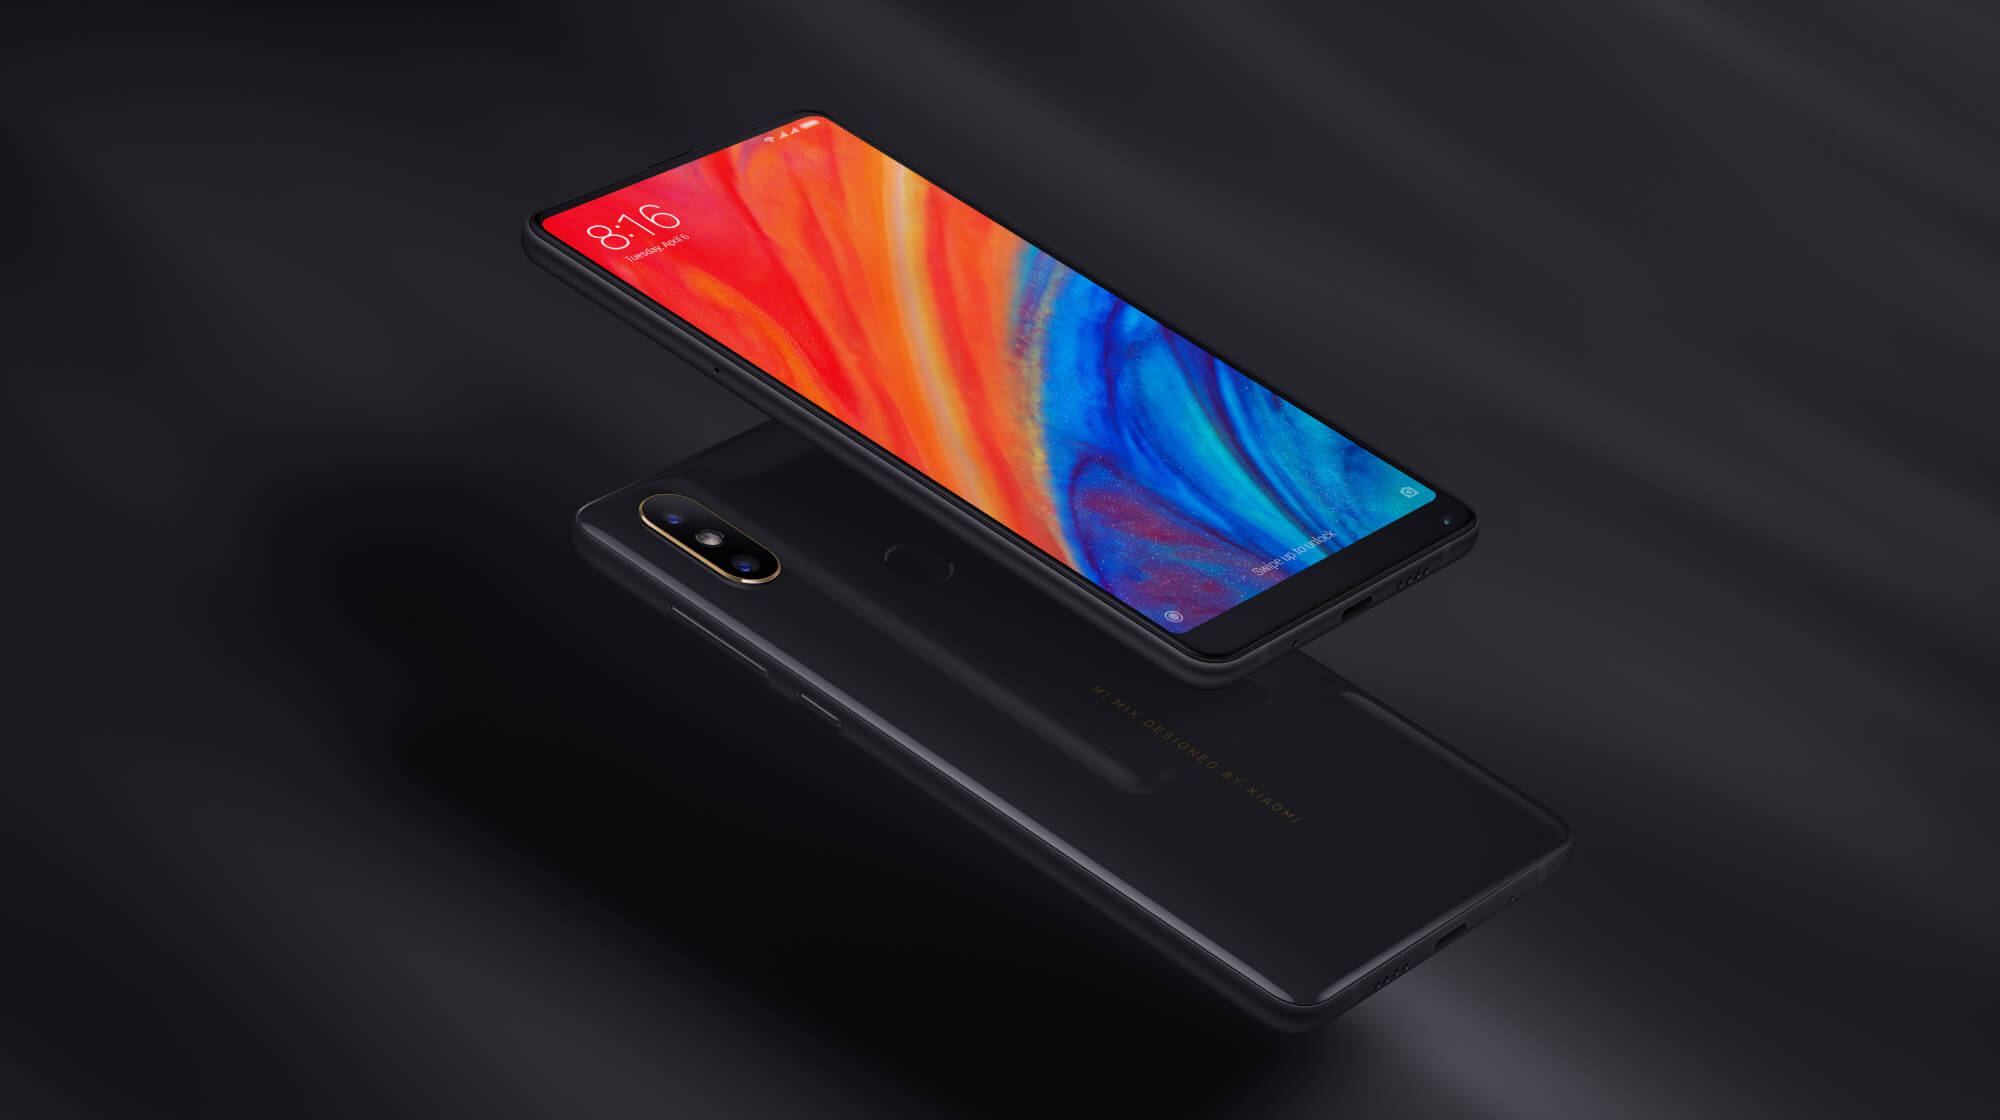 XIAOMI MI MIX 2s By STARCK - High-Tech